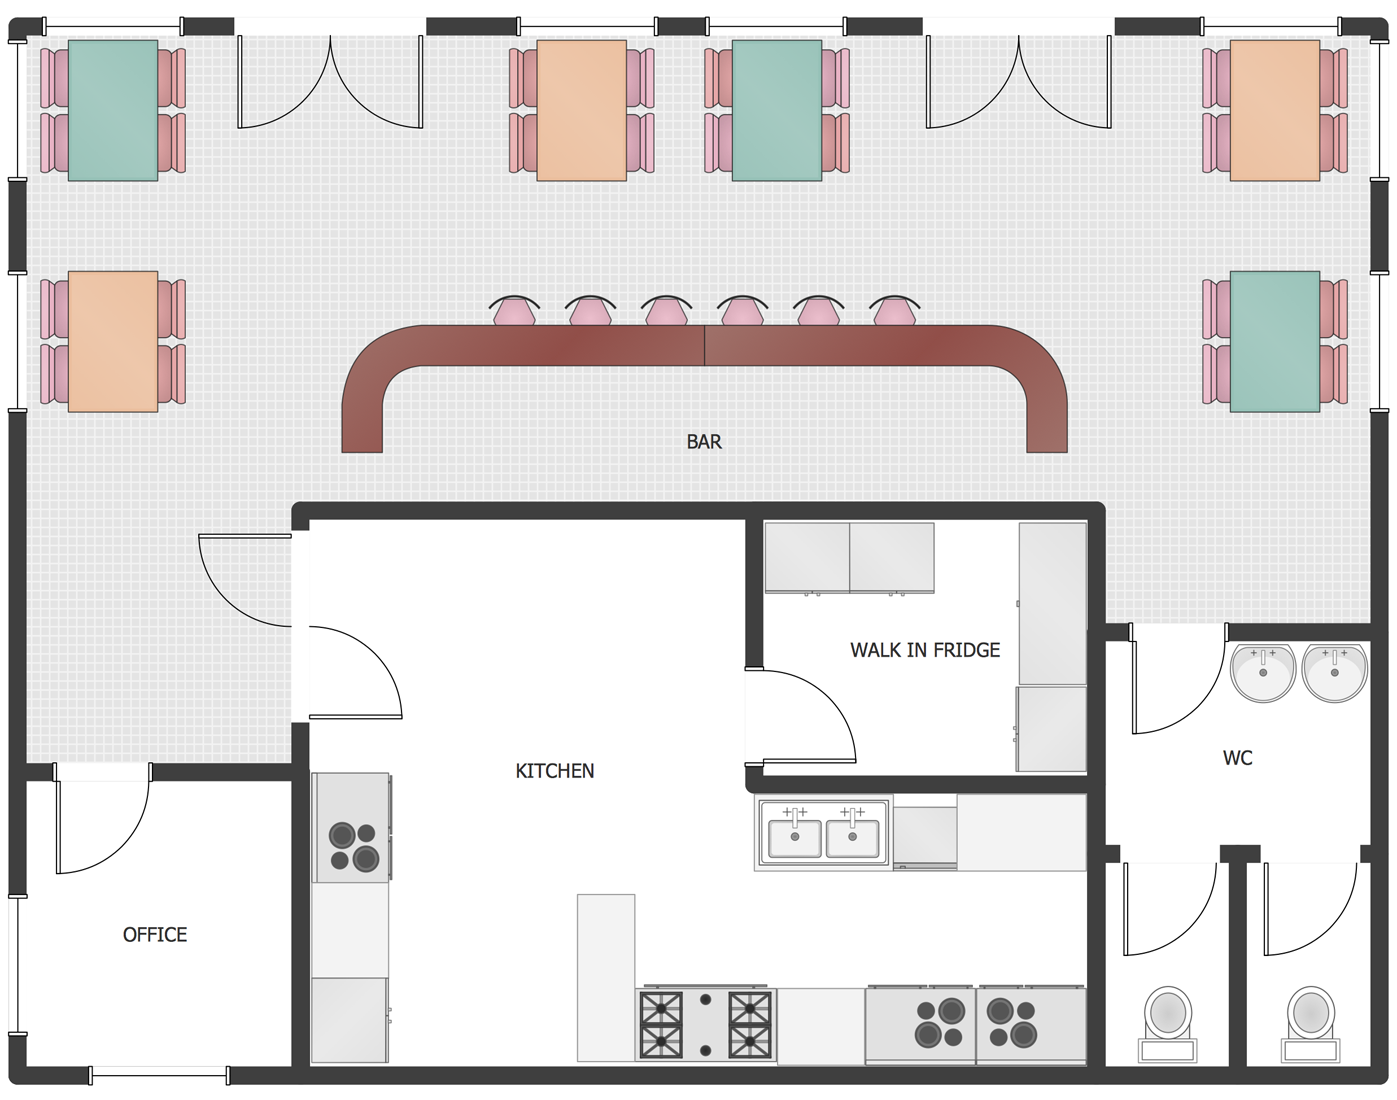 Food Service Building Floor Plans